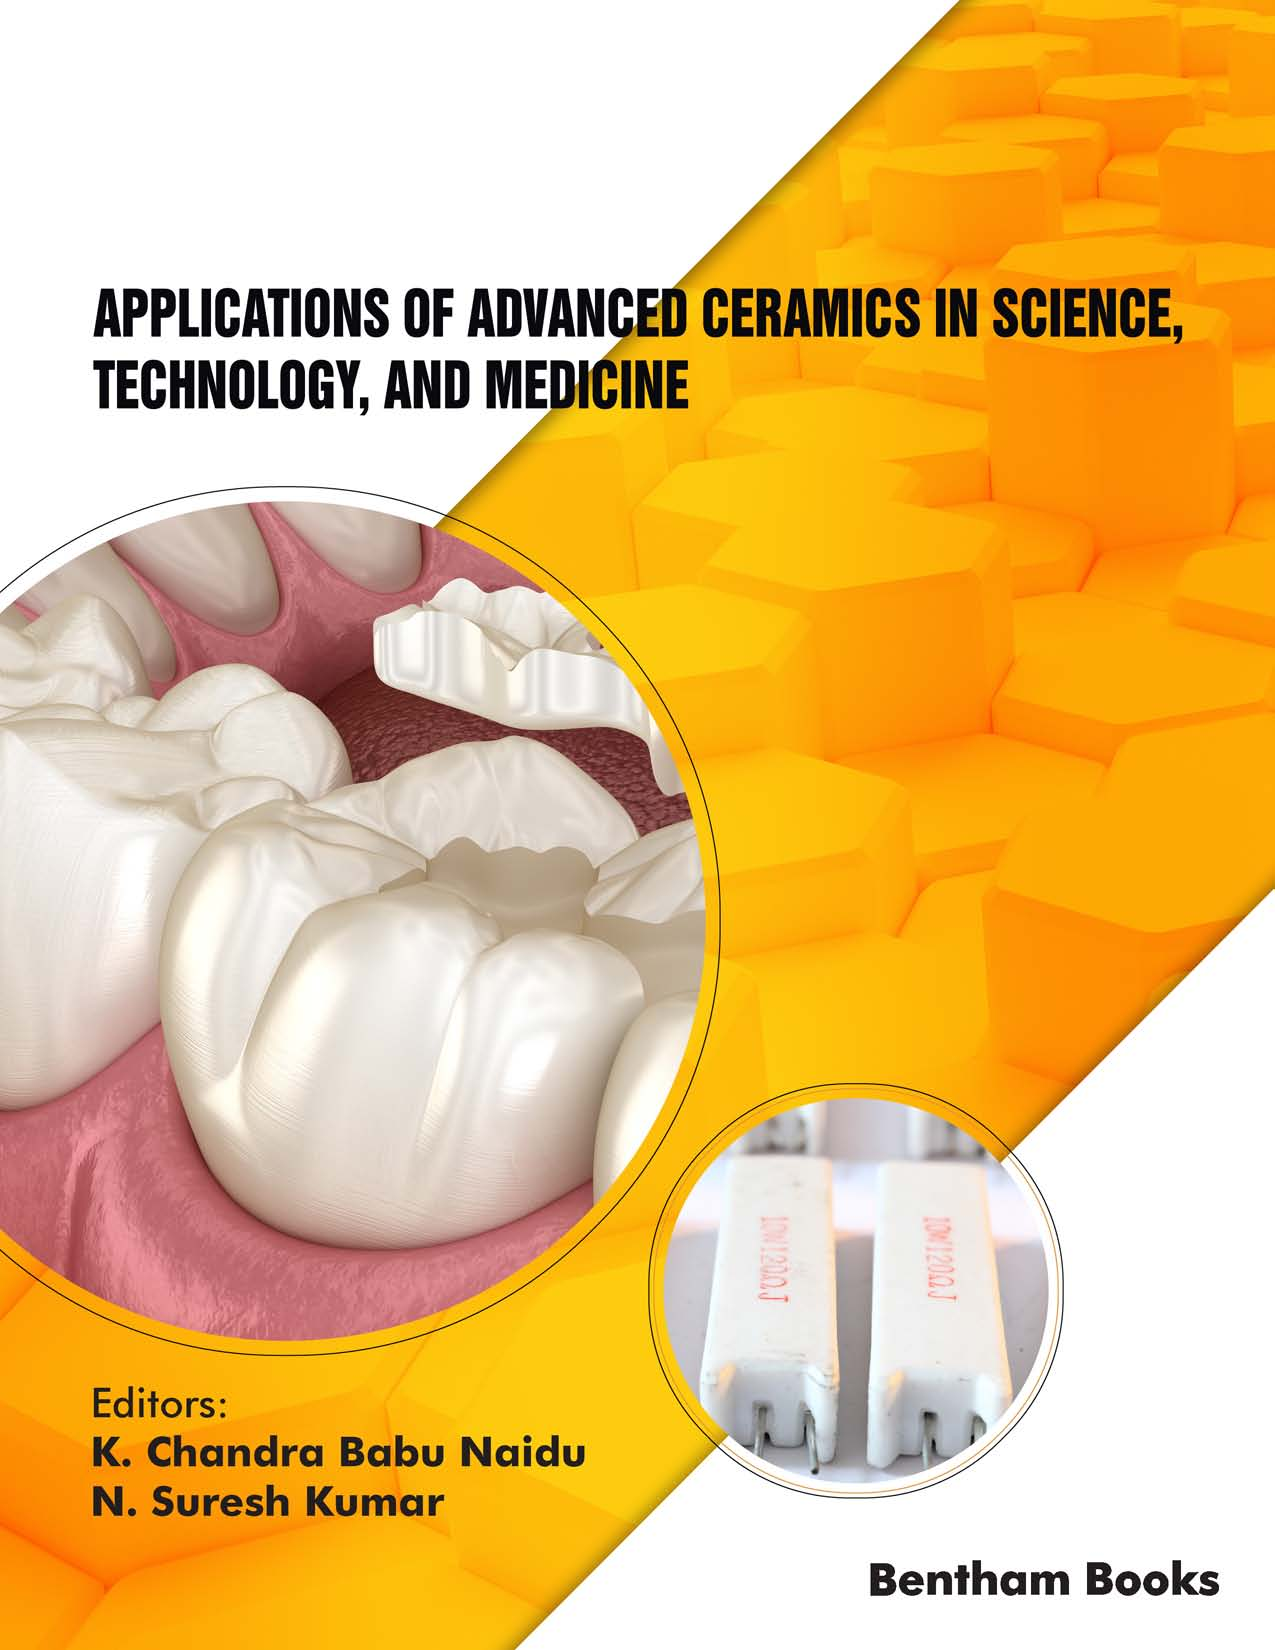 Applications of Advanced Ceramics in Science, Technology, and Medicine